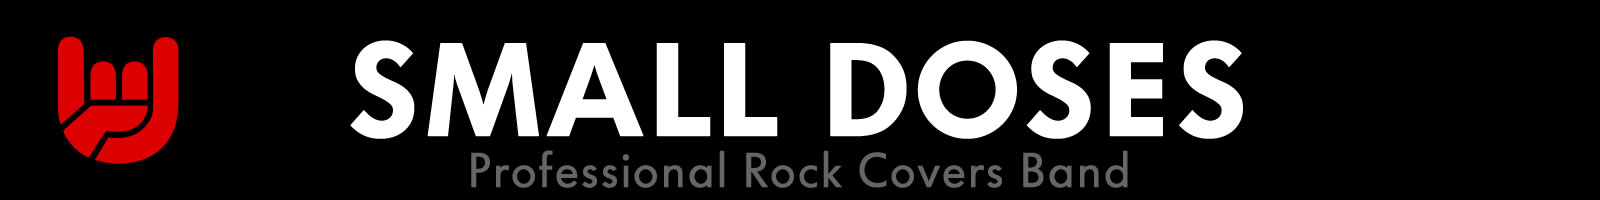 Small Doses Rock Covers Band